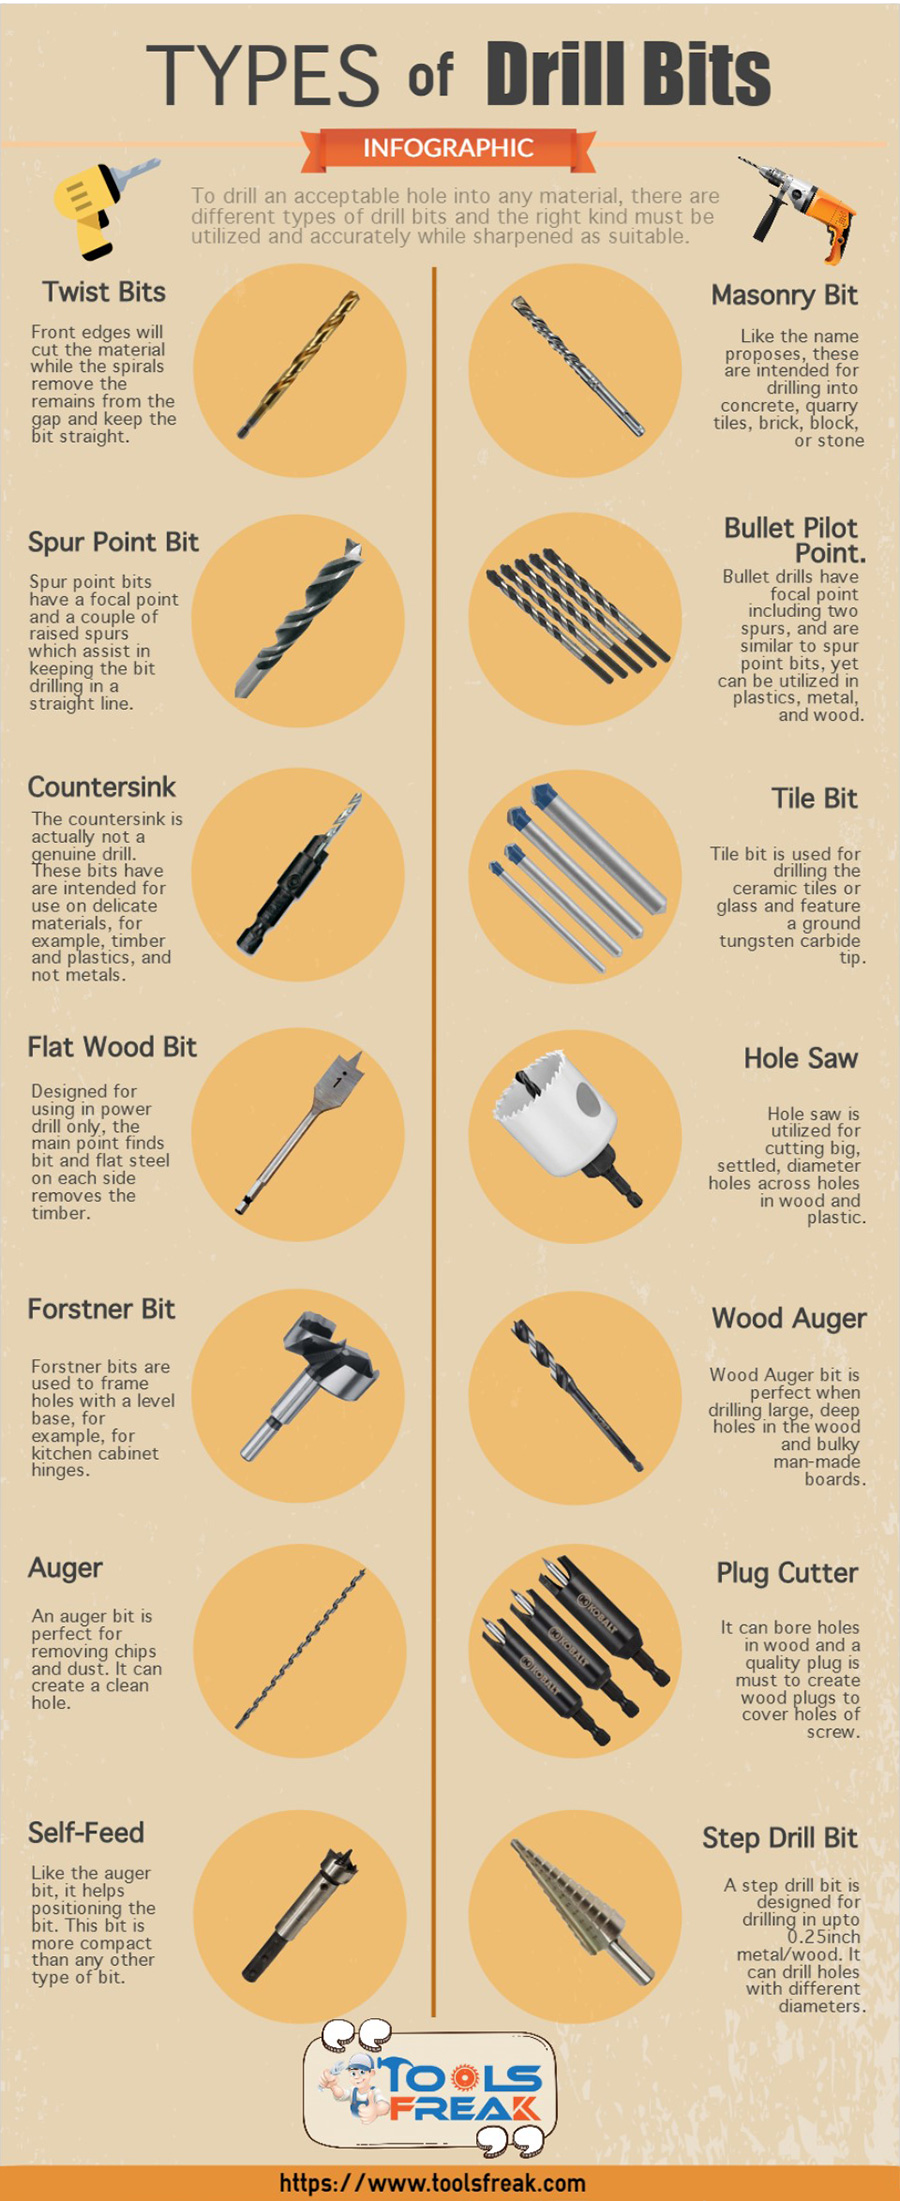 types-of-drill-bits-infographic